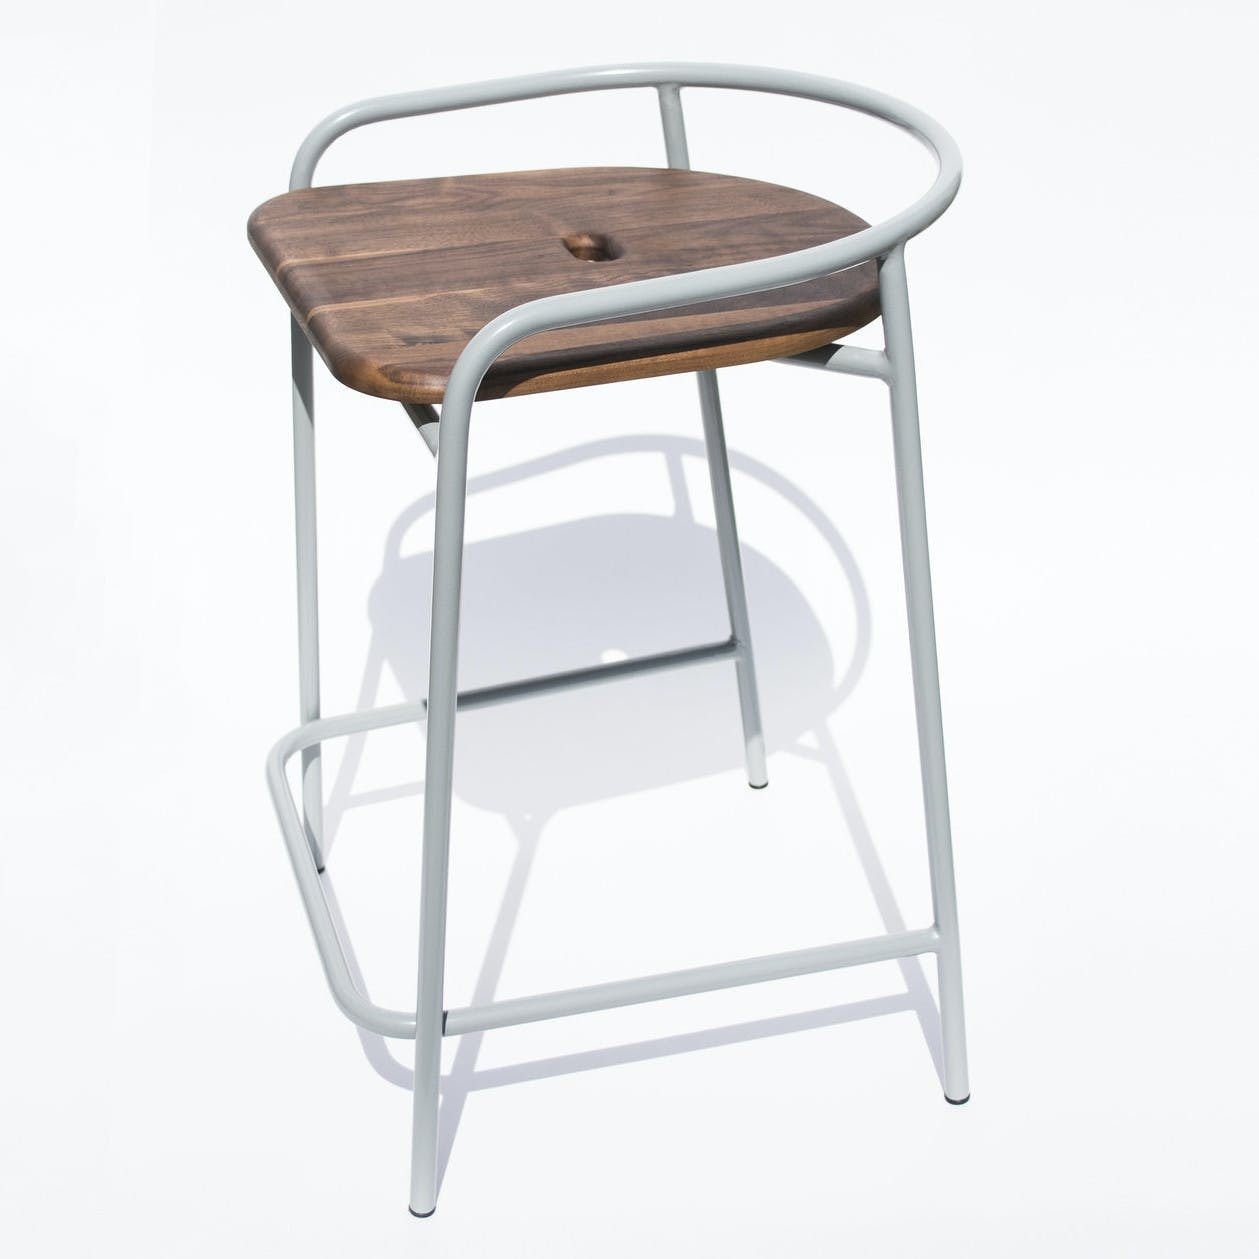 Division 12 Furniture L42 Bender Counter Stool Side Haute Living